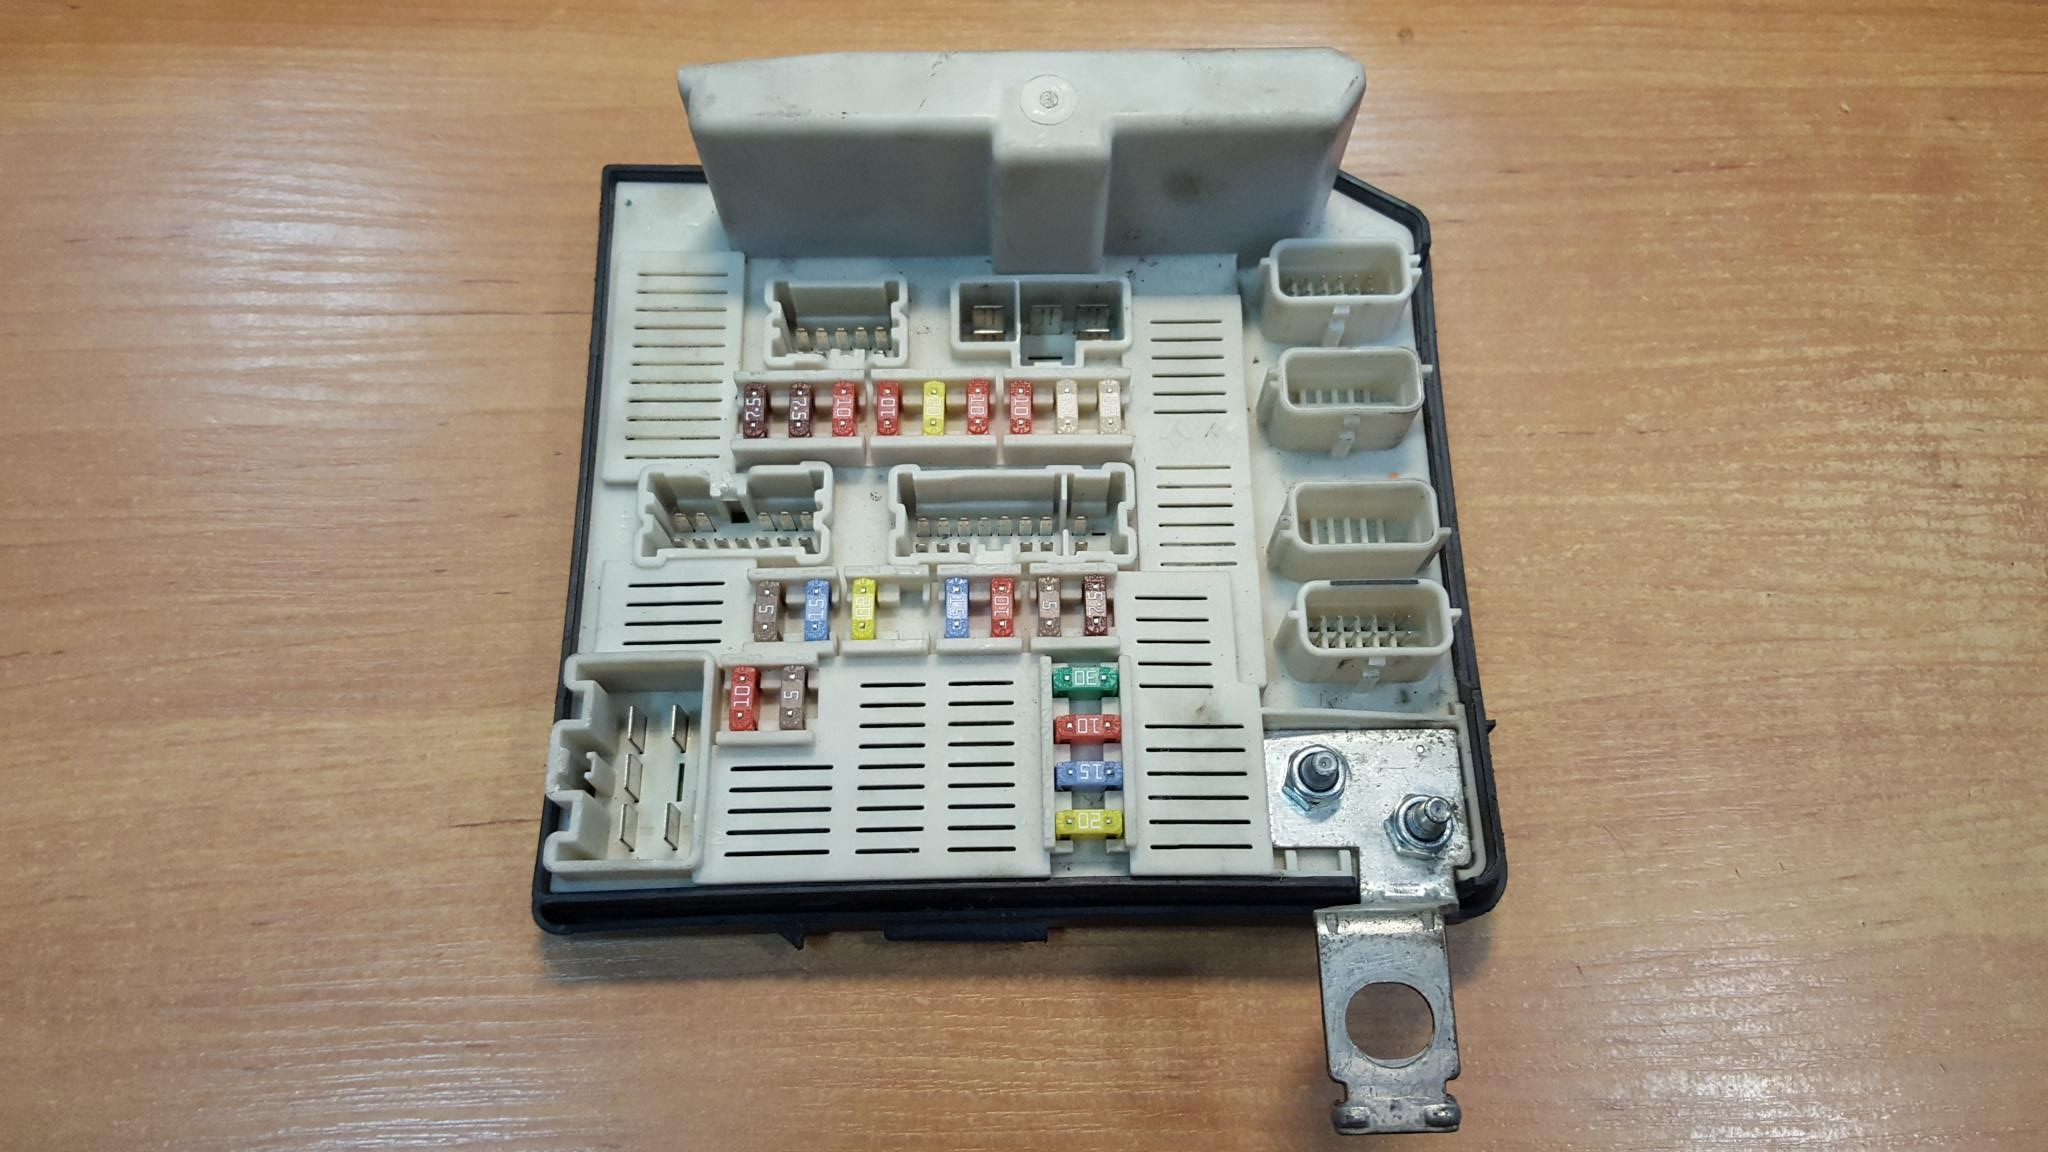 Renault Megane Grand Scenic Fuse Box Location Wiring Diagrams Cover Reno U2022 138dhw Co Nissan Juke Shock Absorber